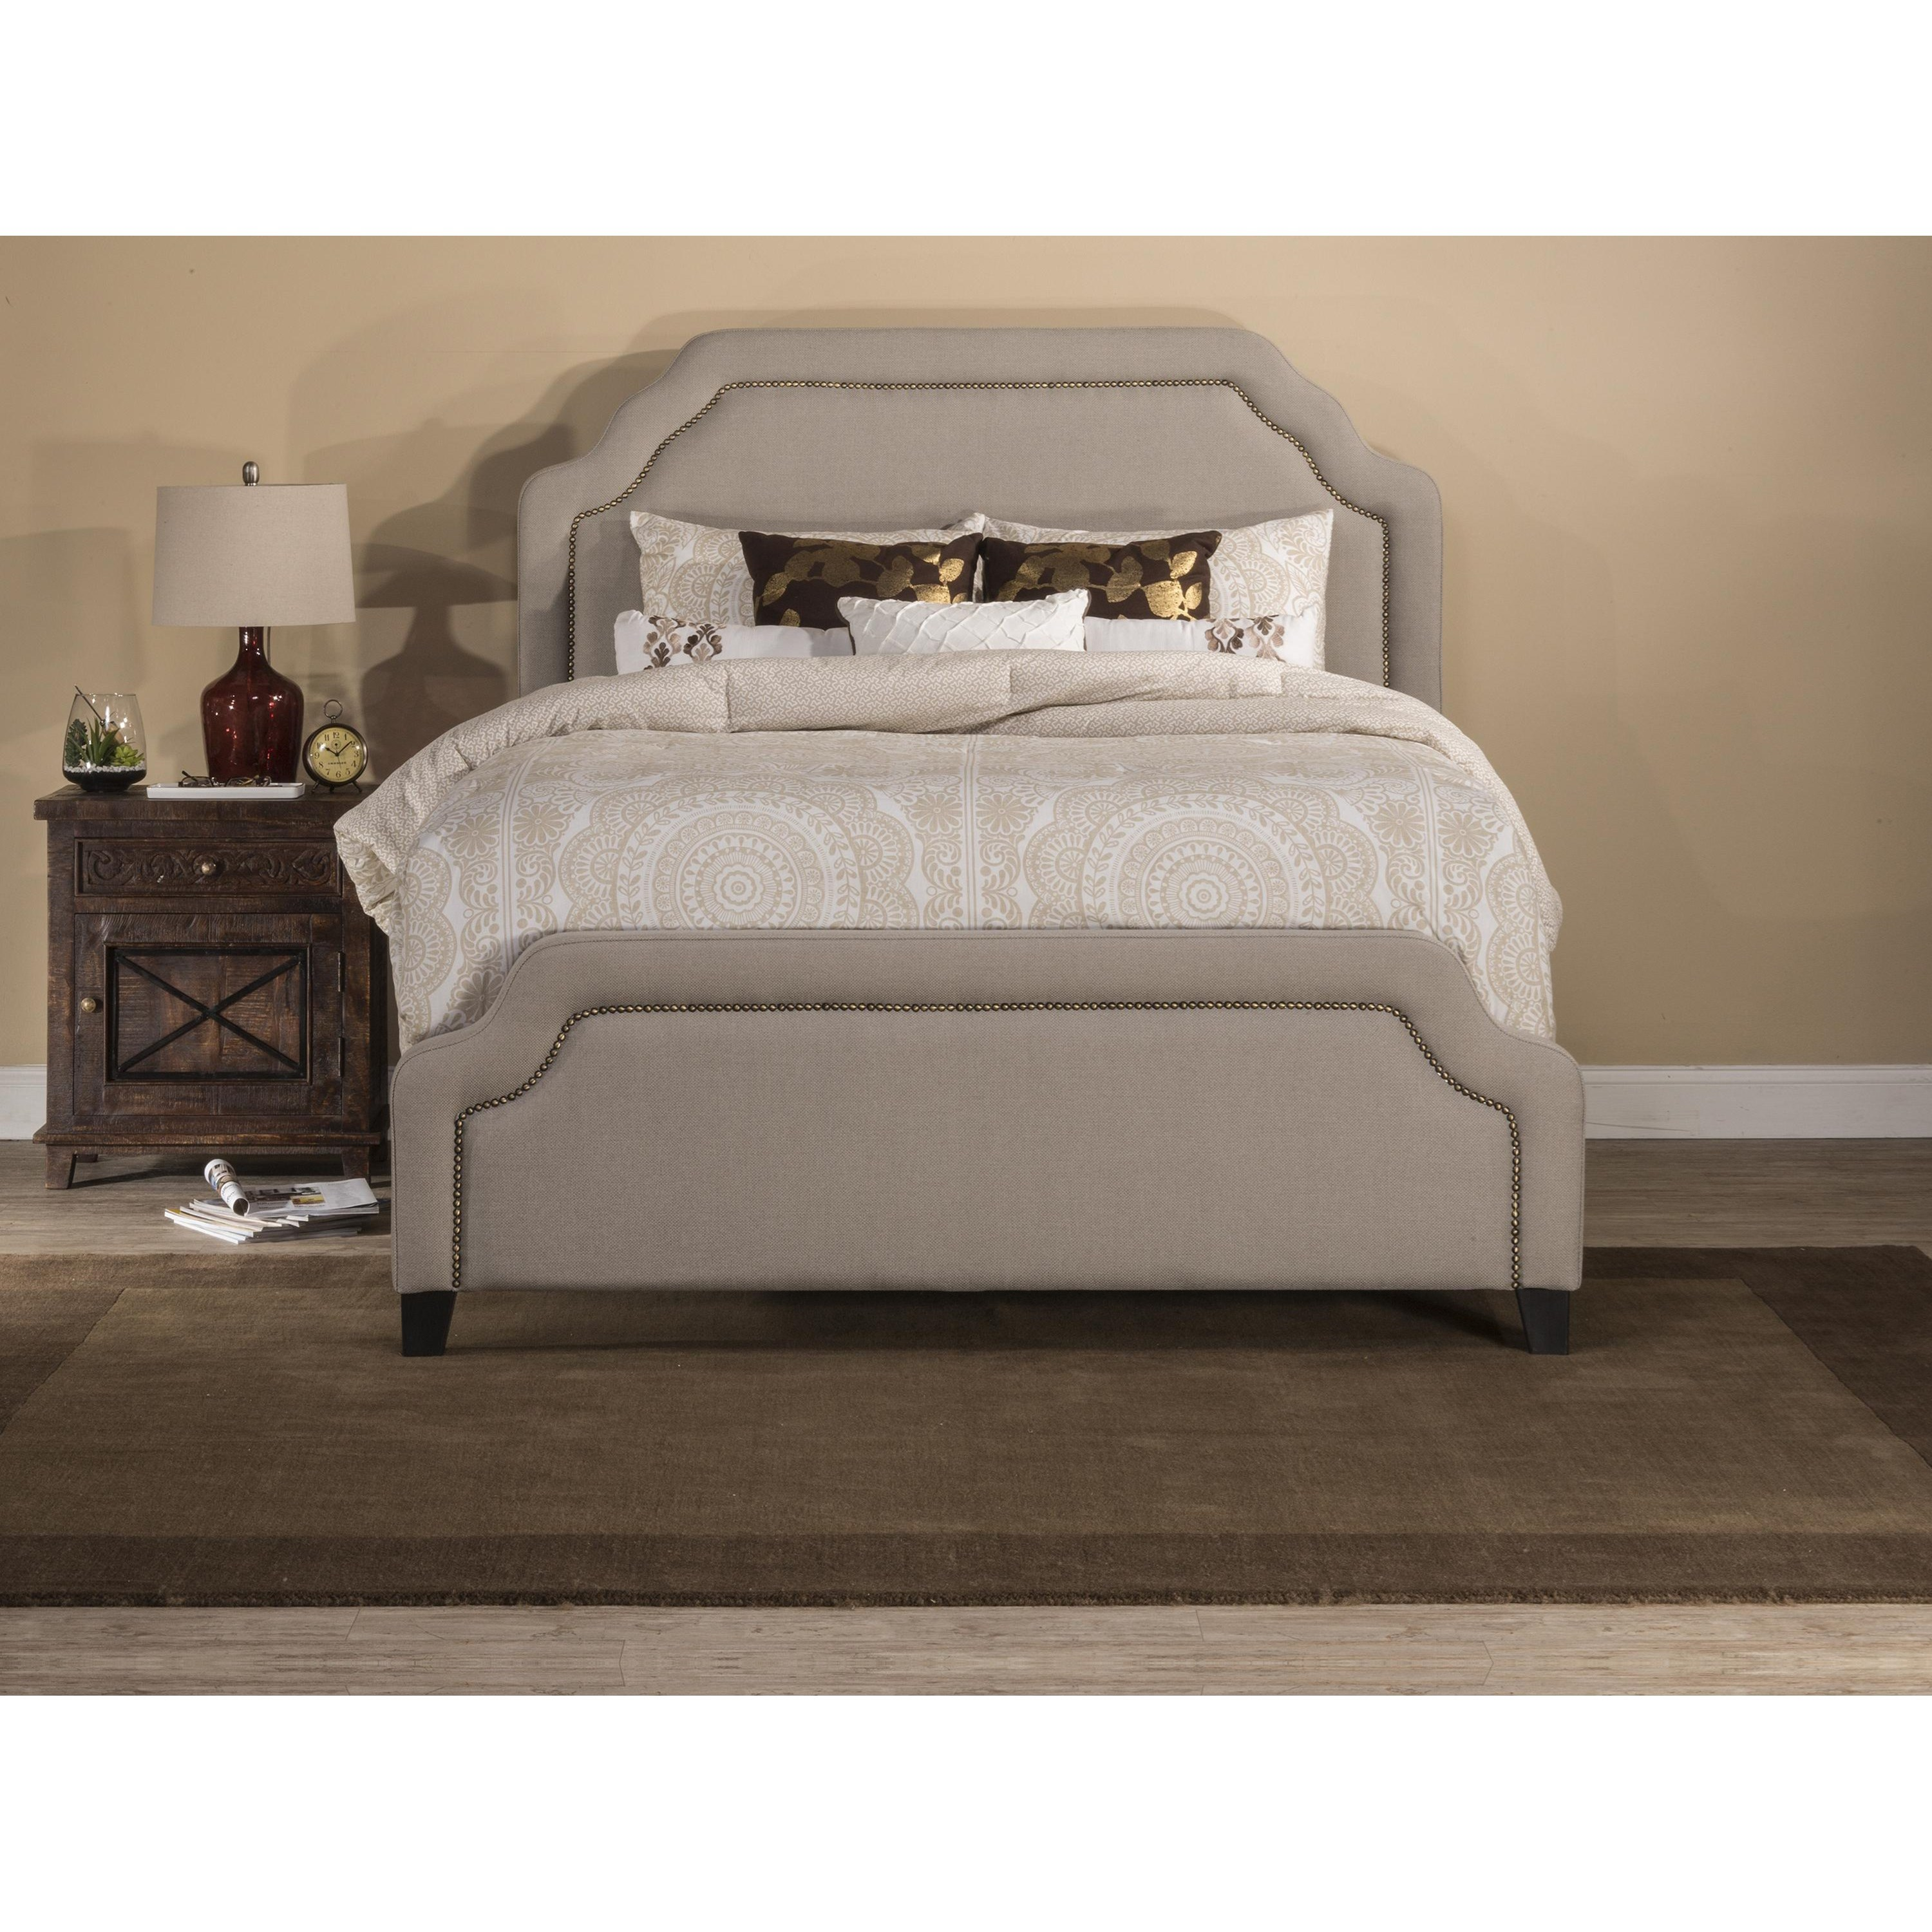 next free footed frame double fabric small day product bed grey living delivery chrome exclusive time